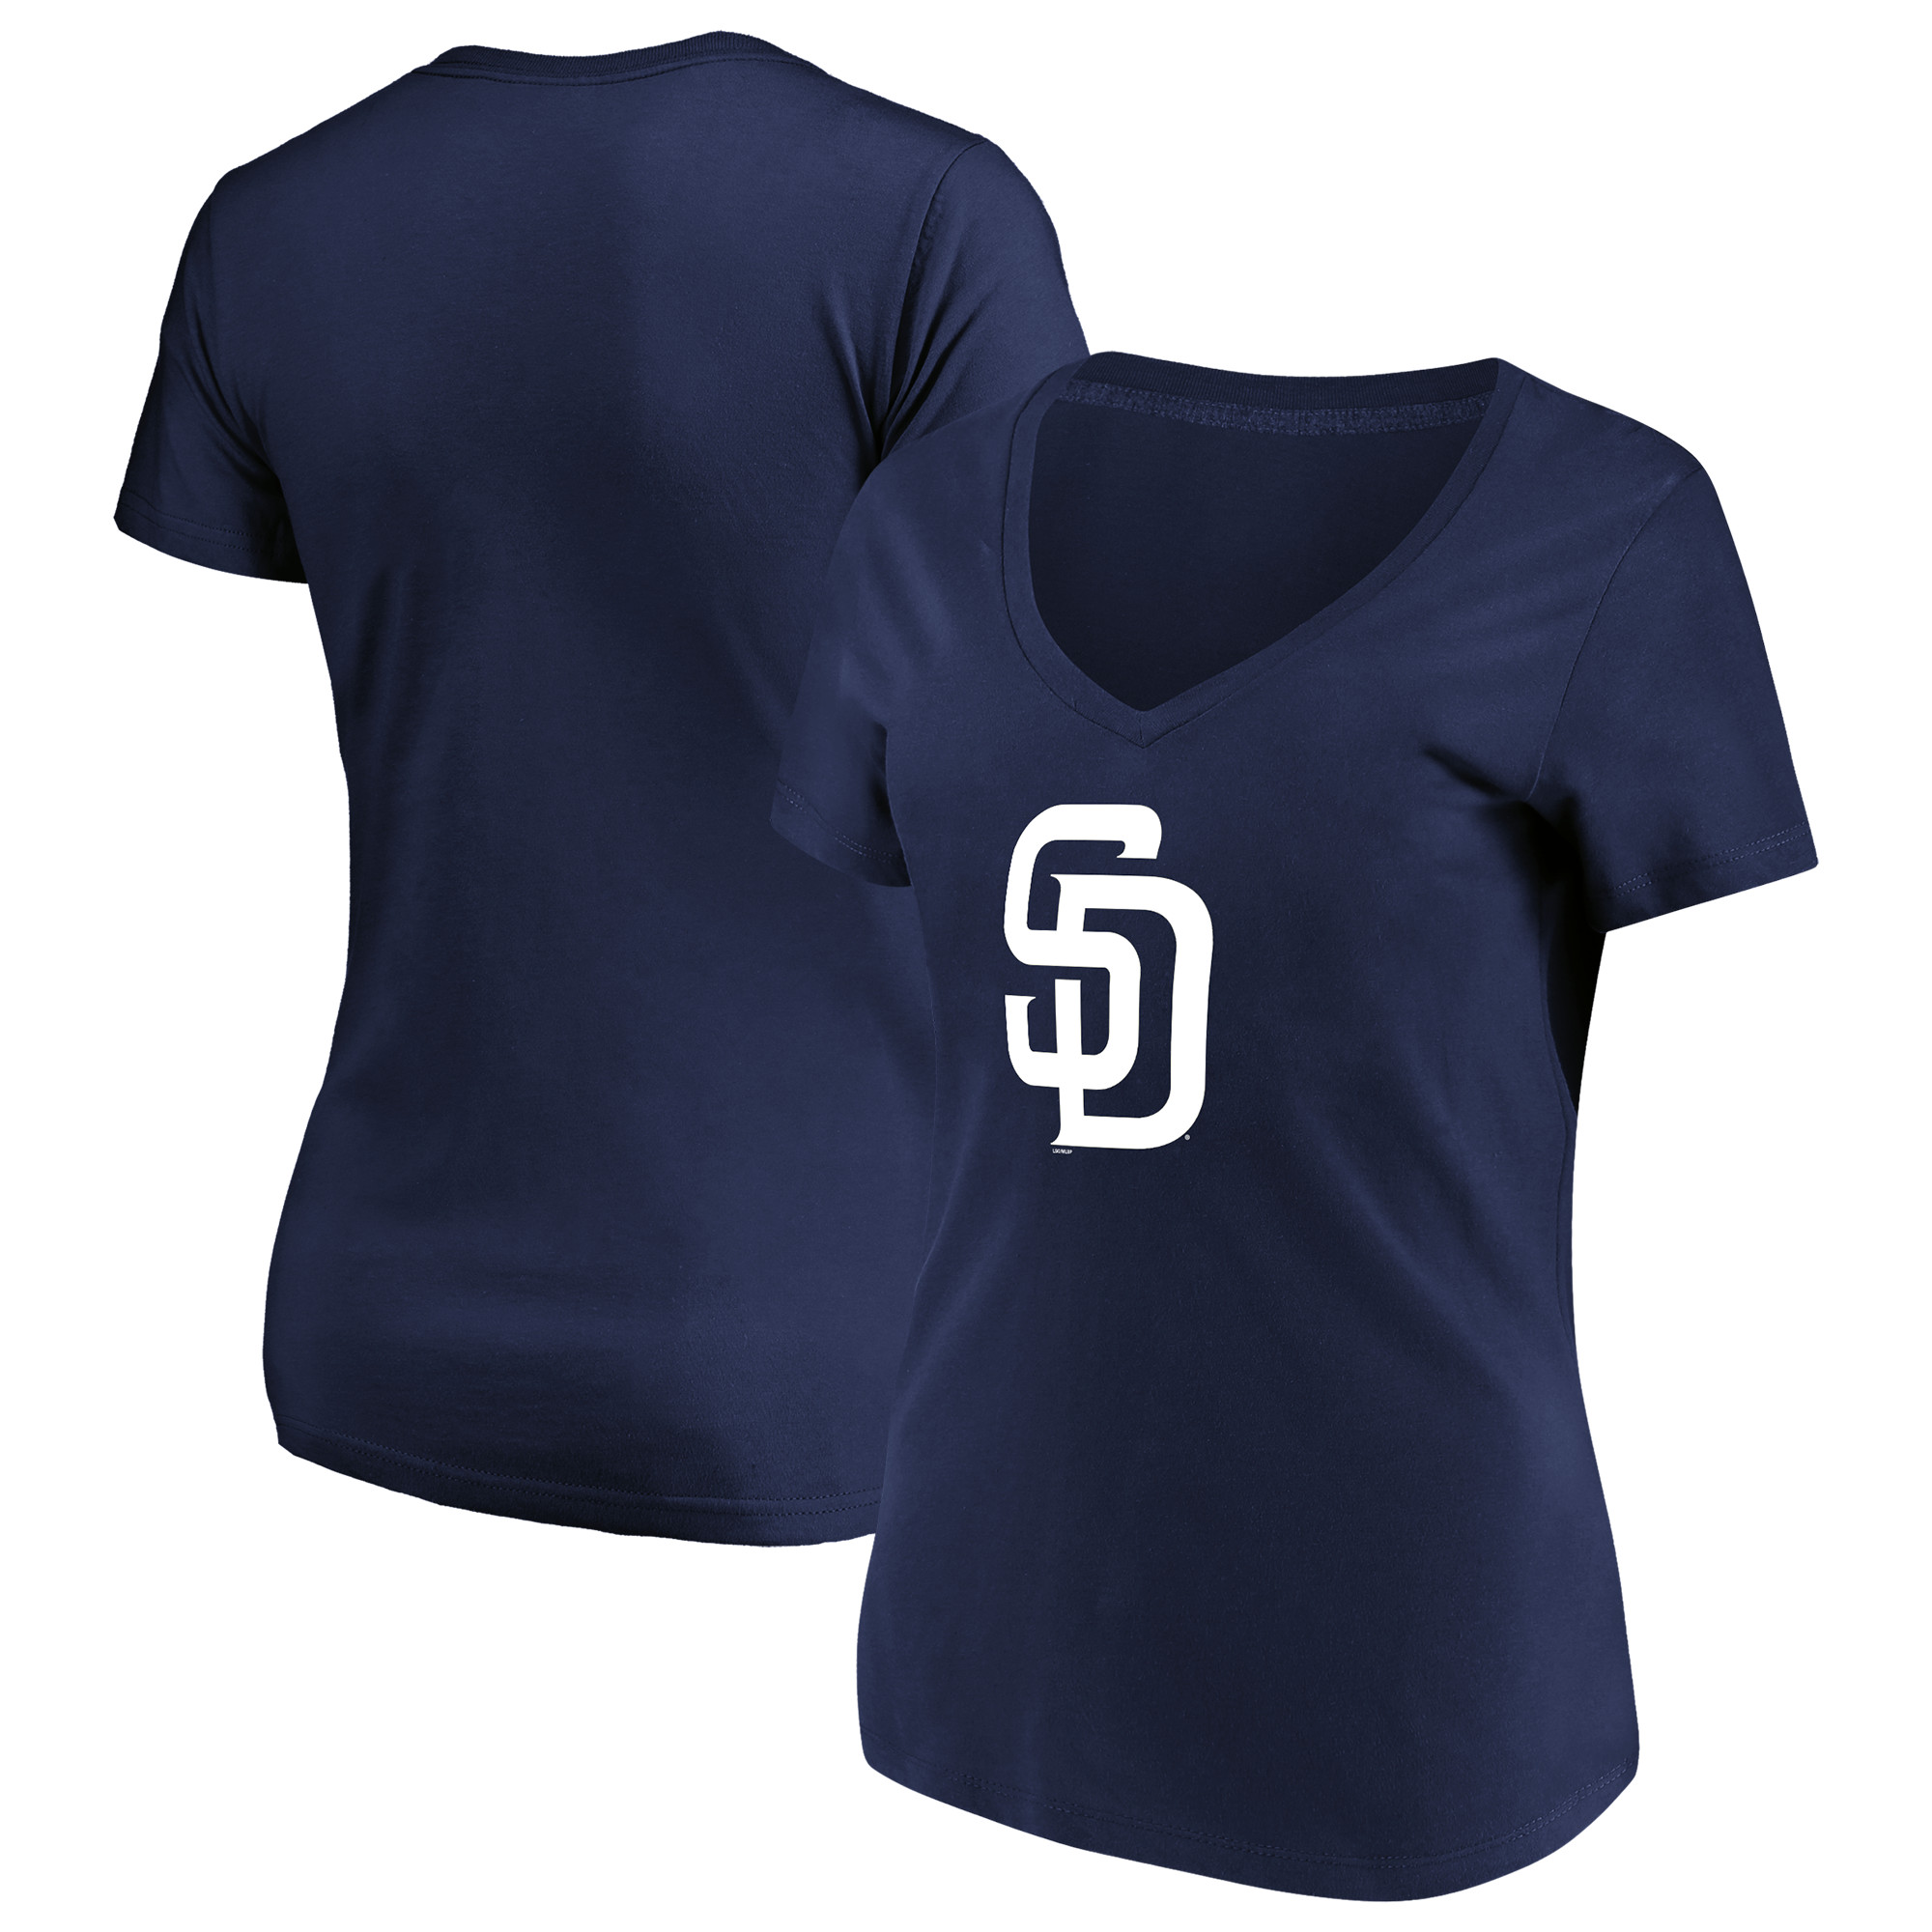 Women's Majestic Navy San Diego Padres Top Ranking V-Neck T-Shirt